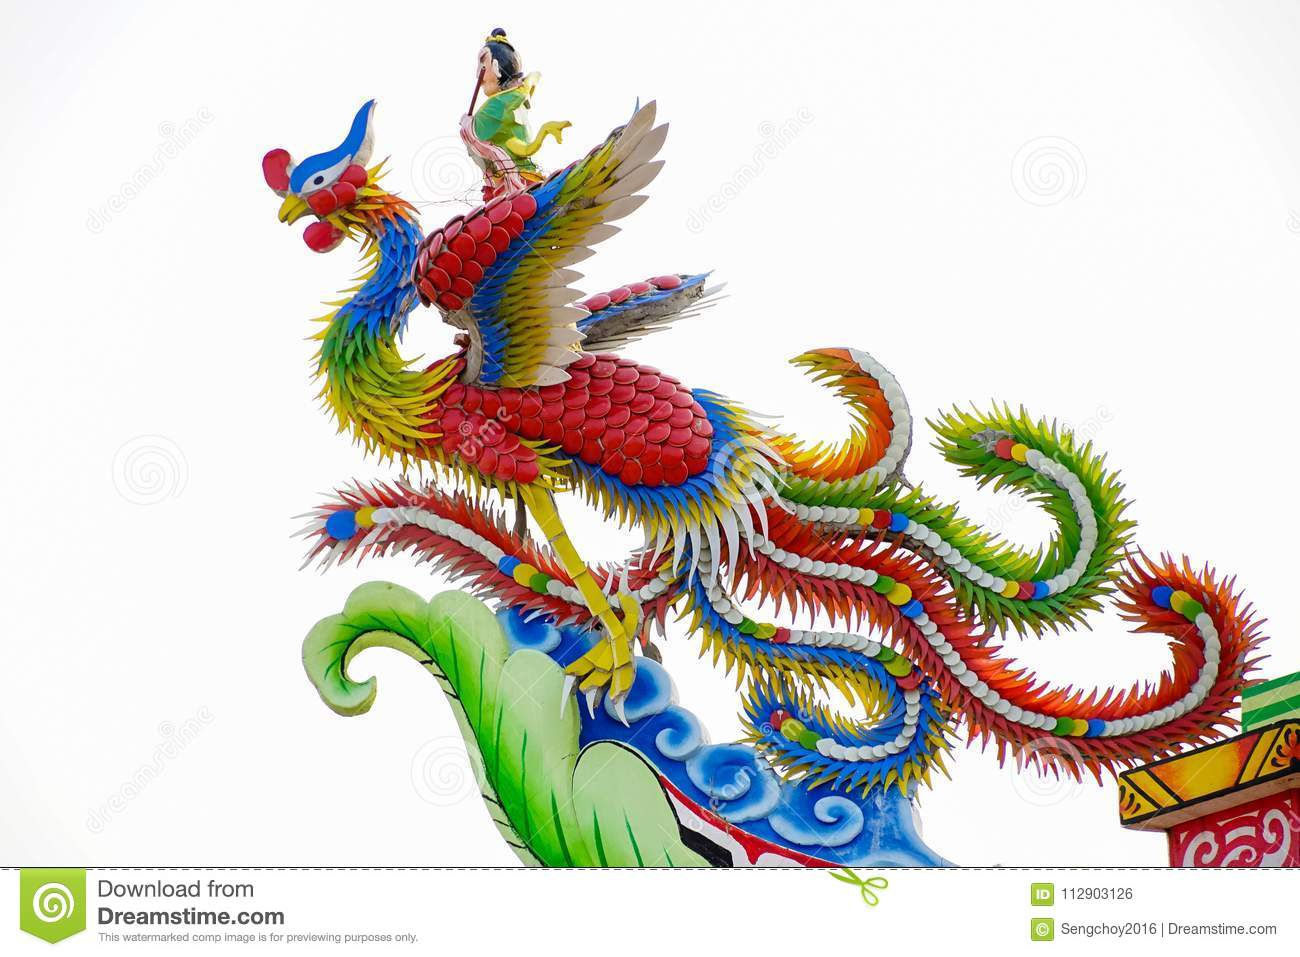 Taoism Symbols Dragon: Statue Of Chinese Dragon Stock Photo. Image Of Background